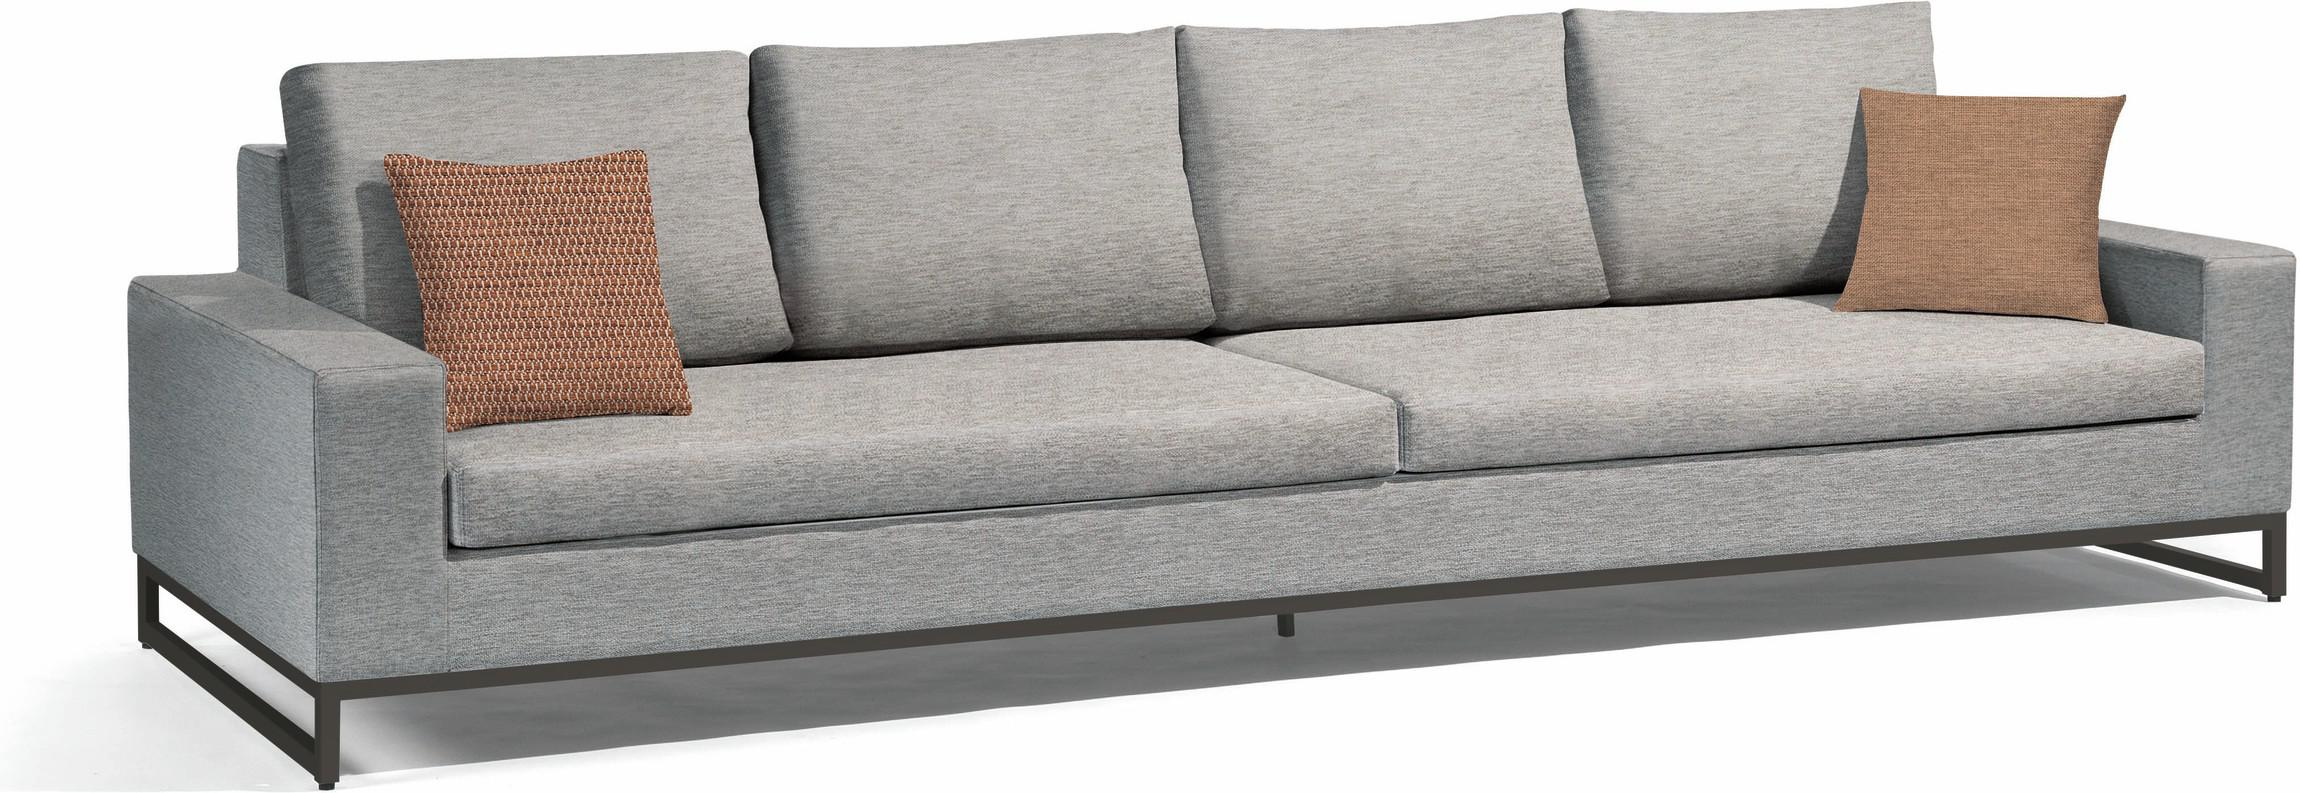 Zendo Sofa fixed - Lotus Sparrow 290